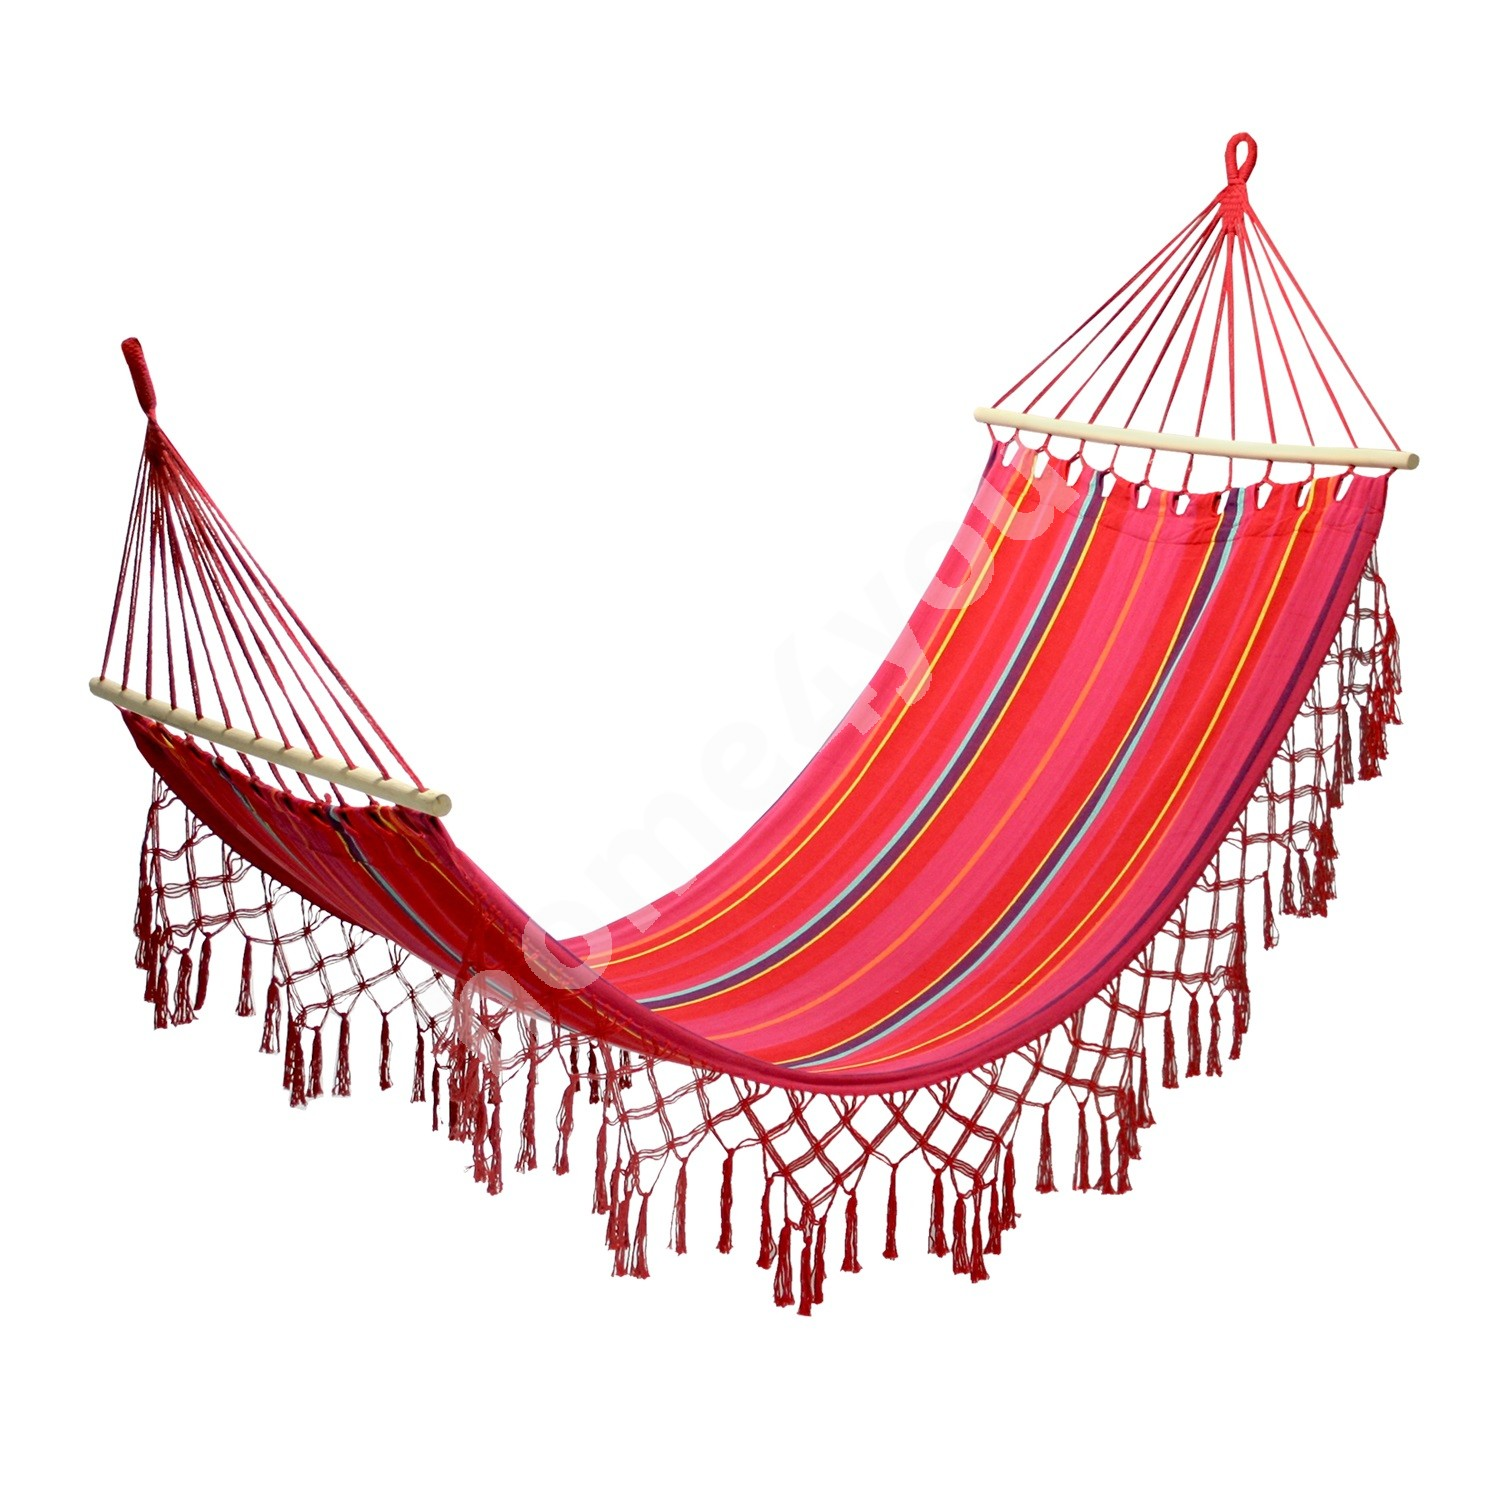 Hammock ROMANCE, 200x100cm, material: cotton, color: red striped